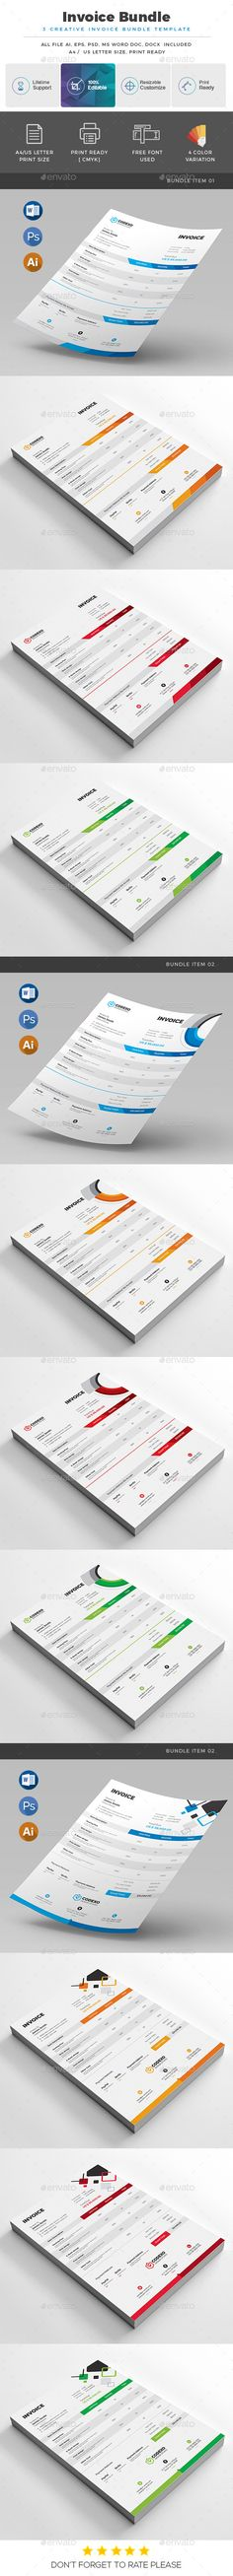 Invoice Ai illustrator, Template and Print design layouts - printing invoice